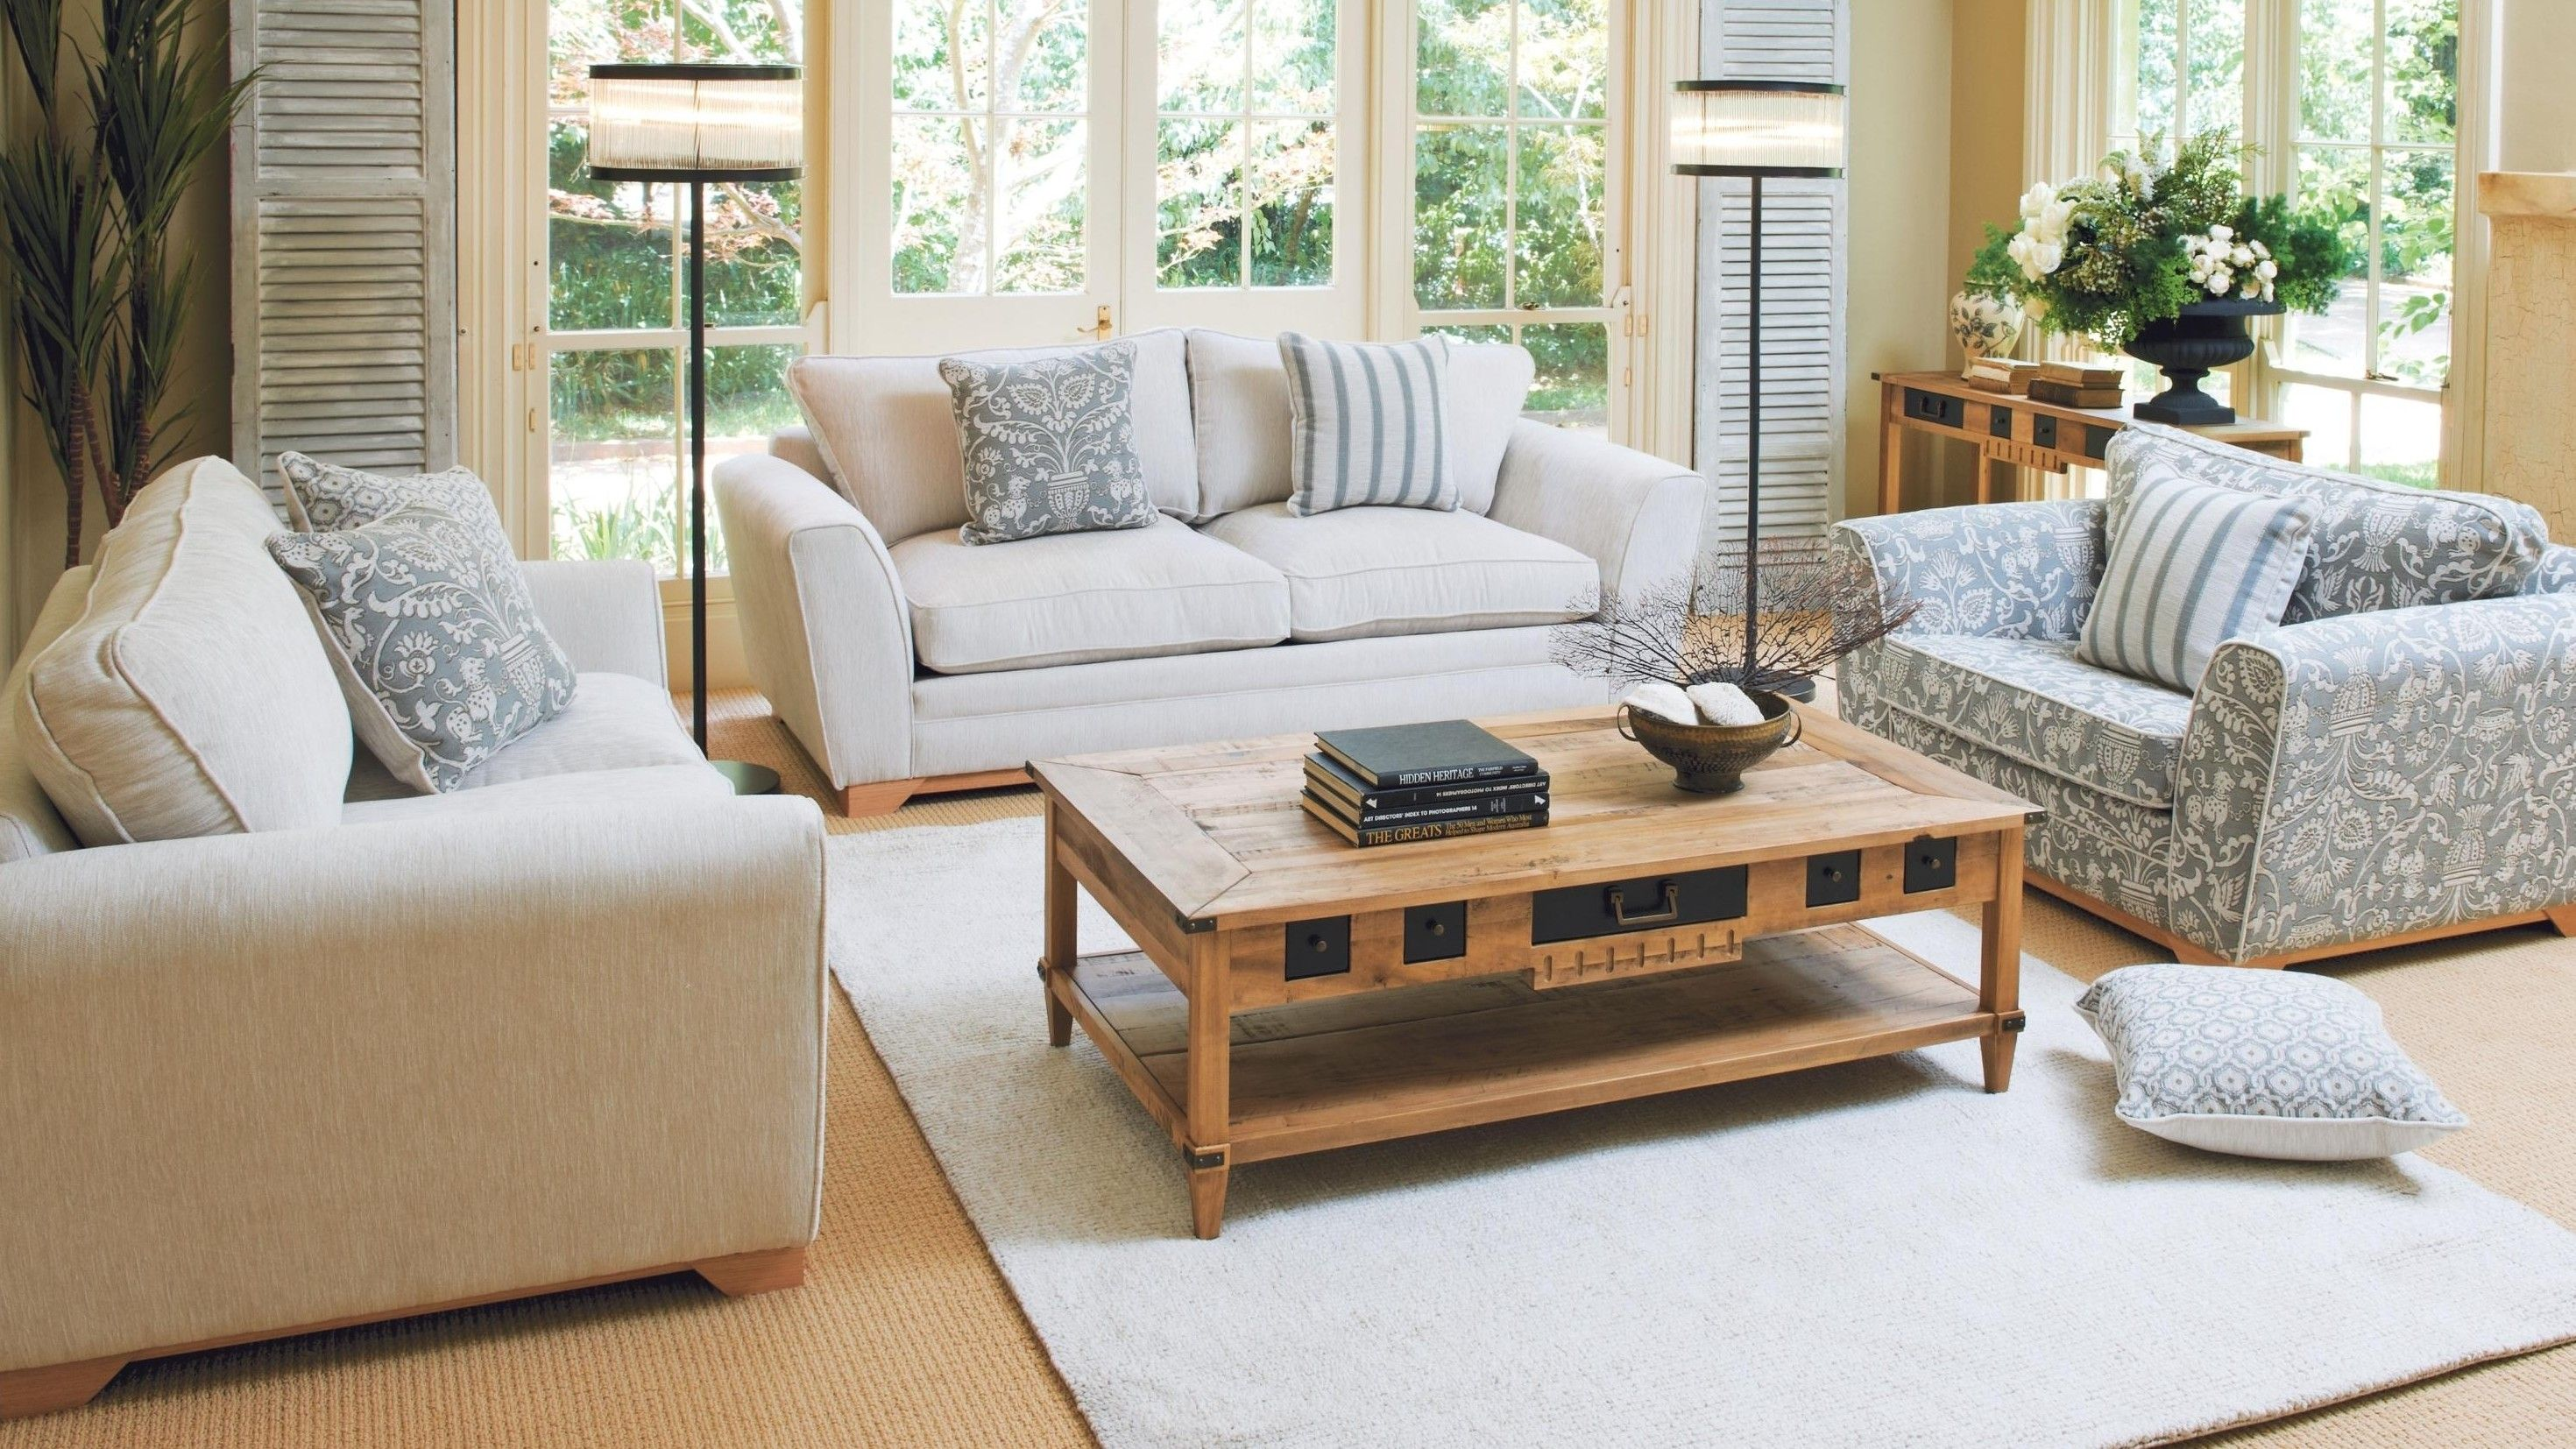 cooper sofa harvey norman good quality sets in bangalore sloane 2 5 seater fabric ideas for